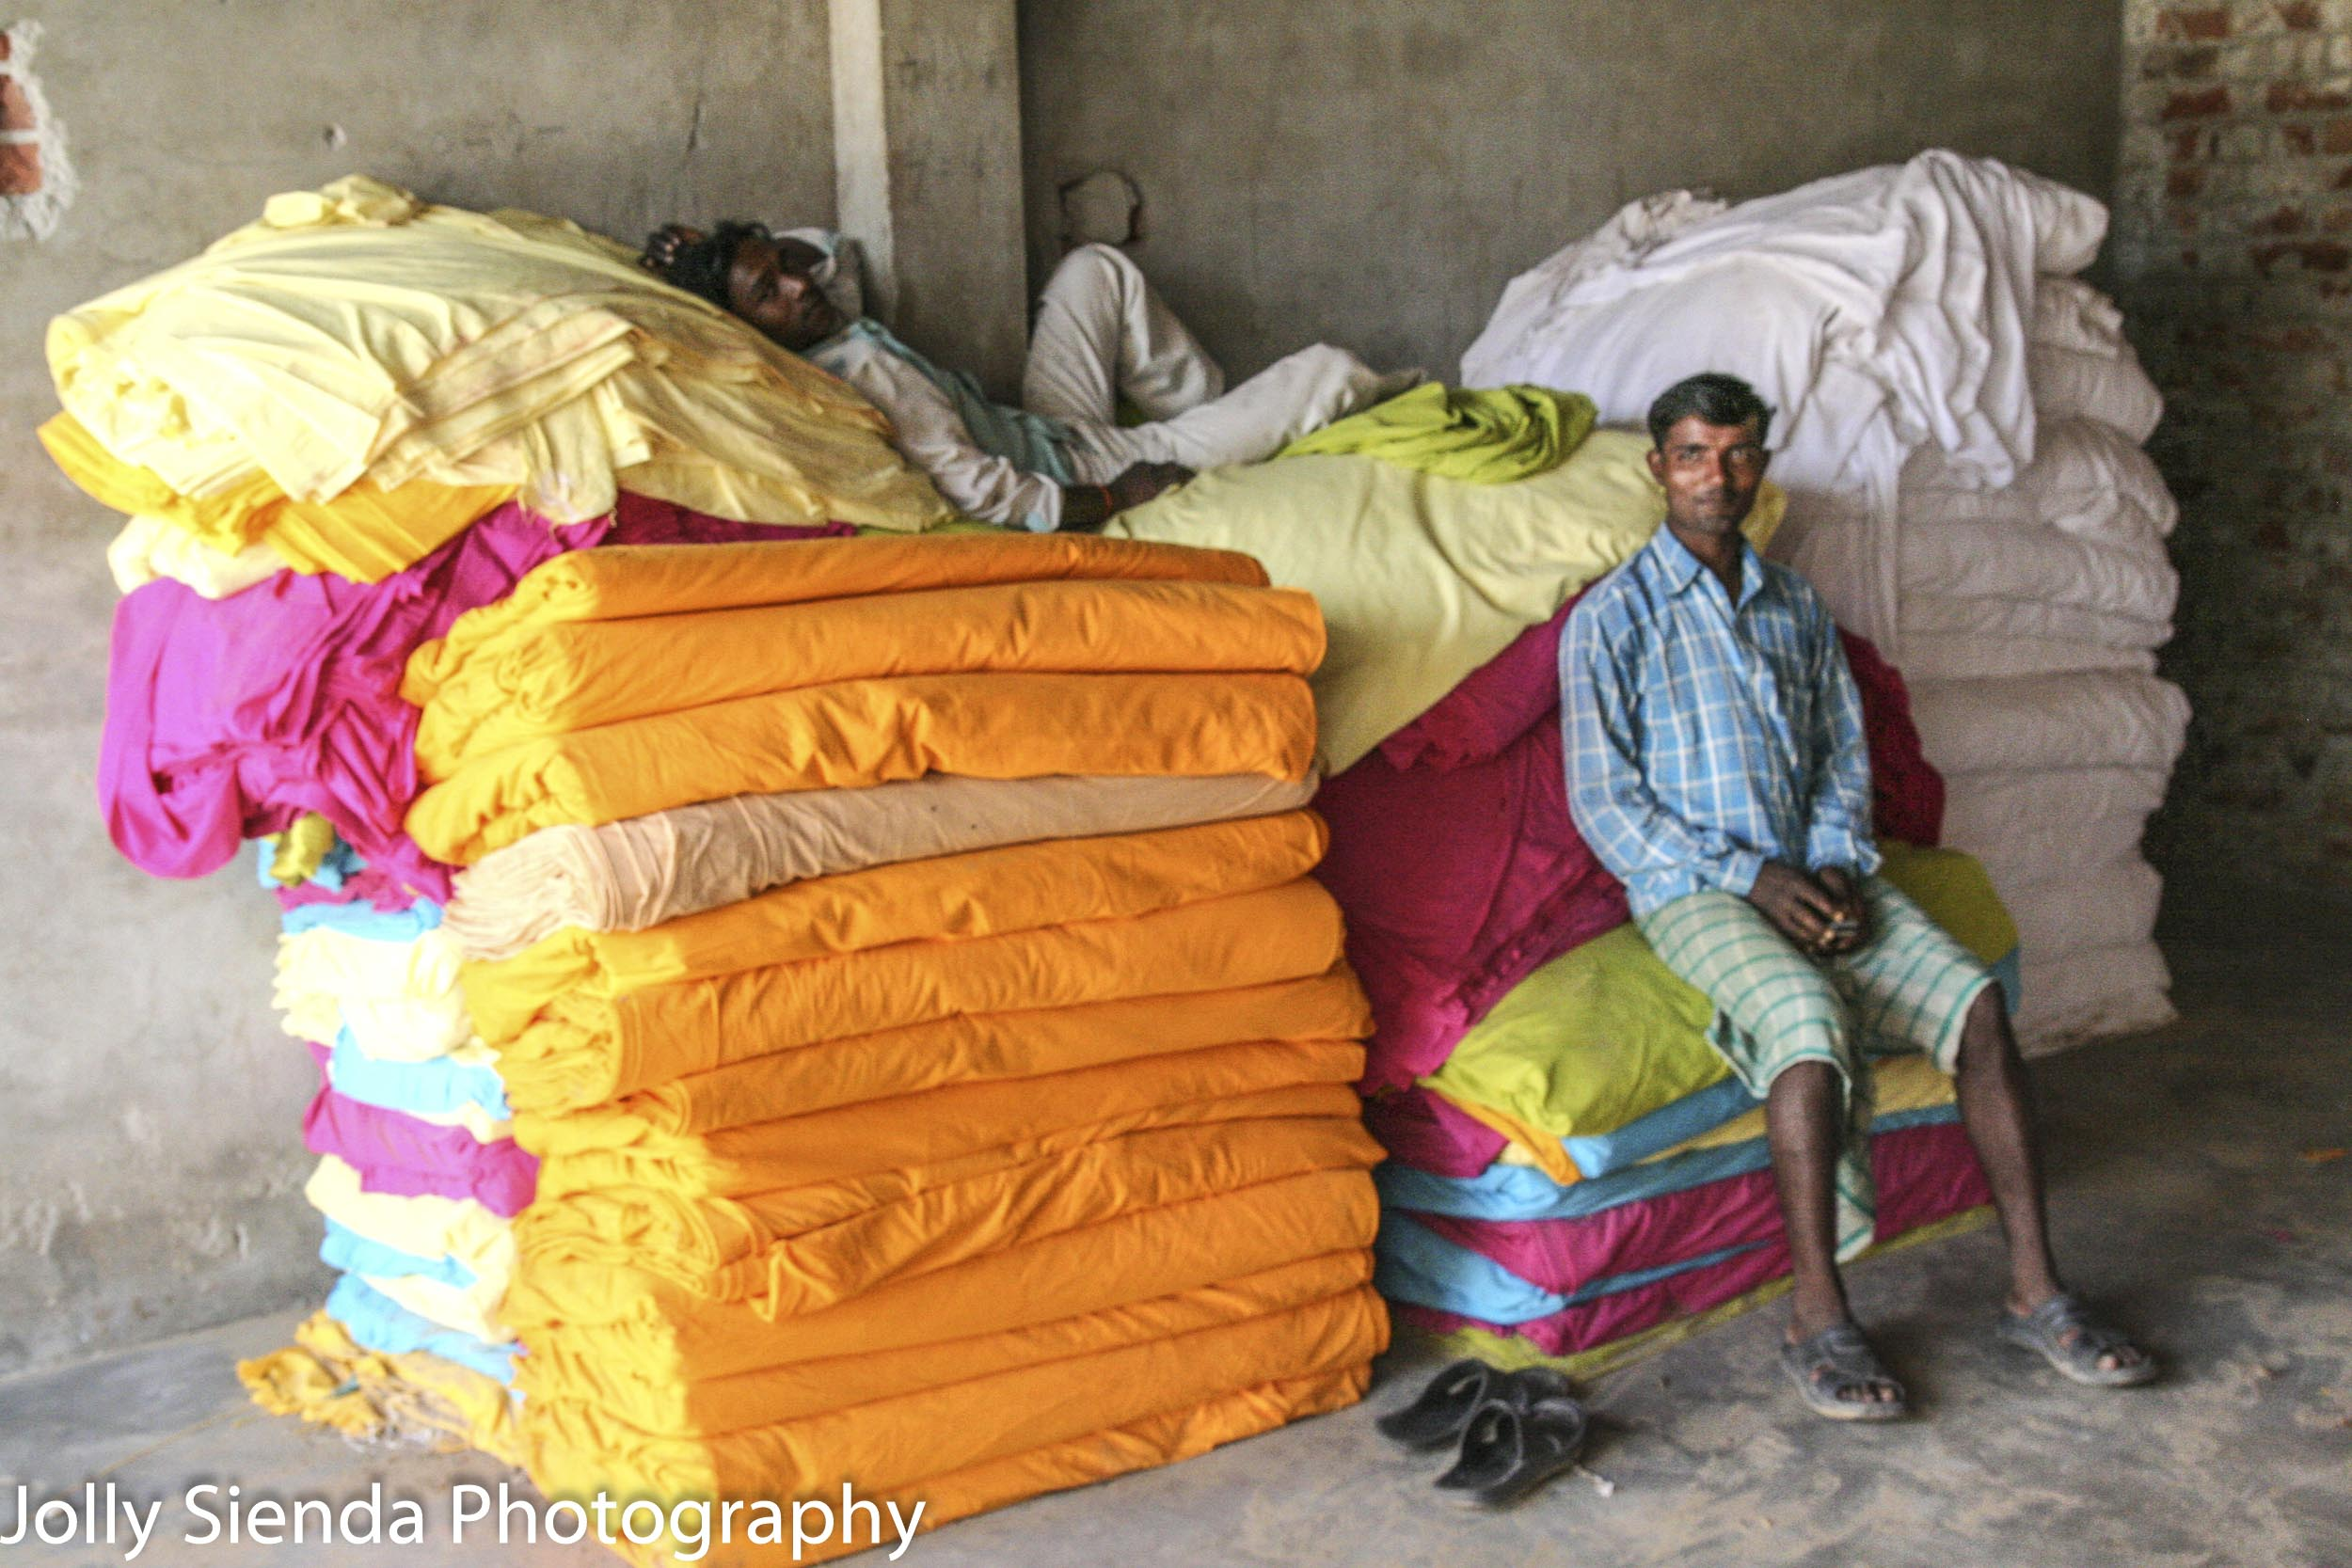 Print block factory workers rest on material